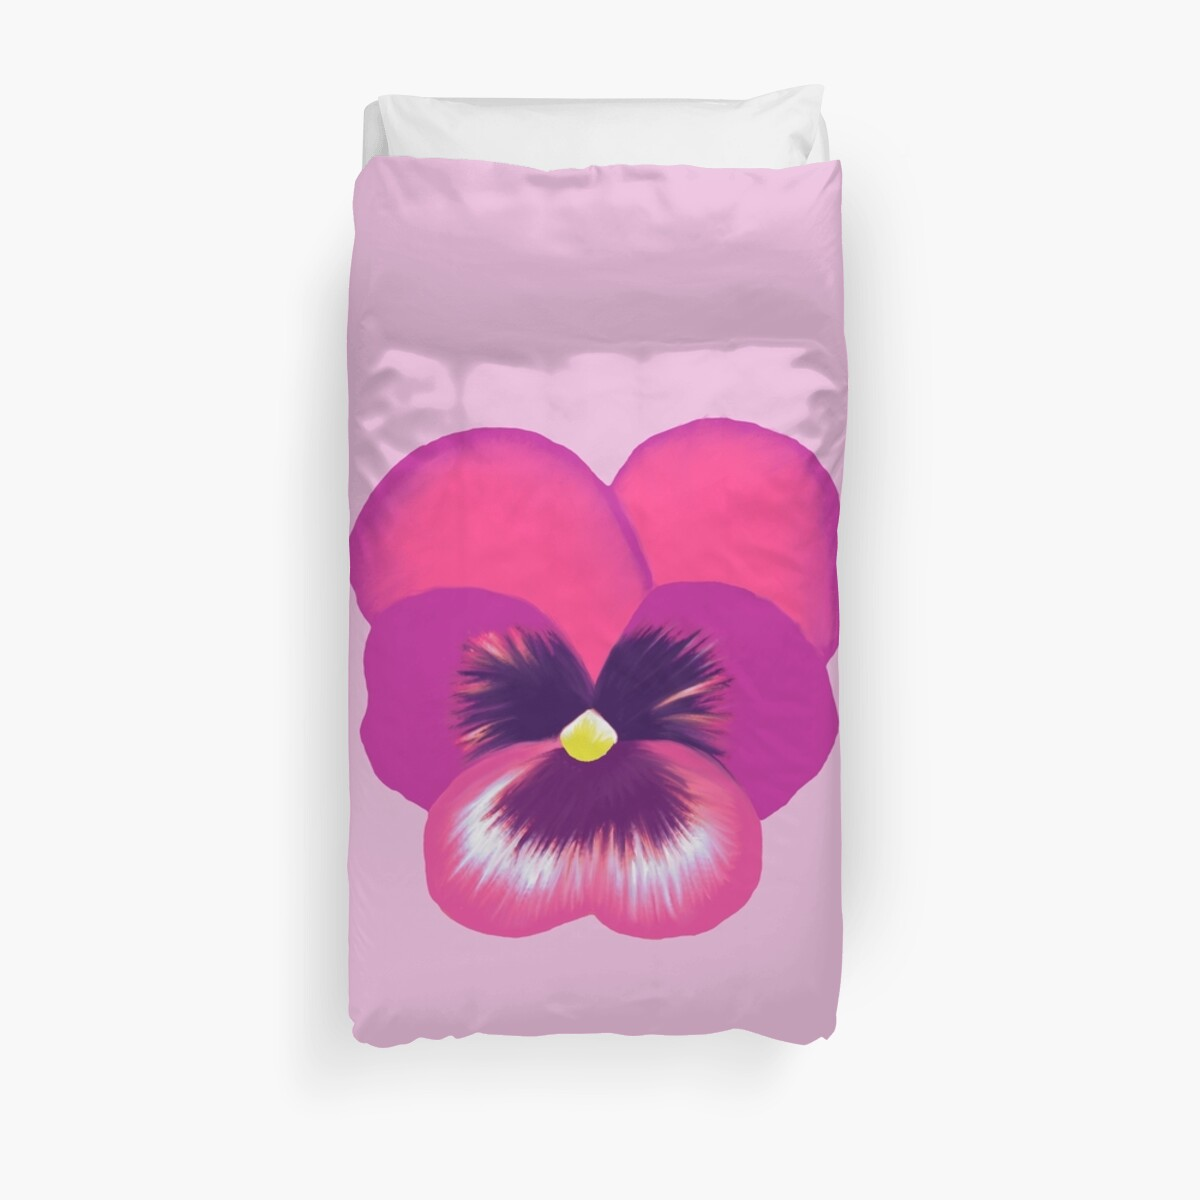 Single hot pink pansy flower duvet covers by emma fifield redbubble single hot pink pansy flower by emma fifield mightylinksfo